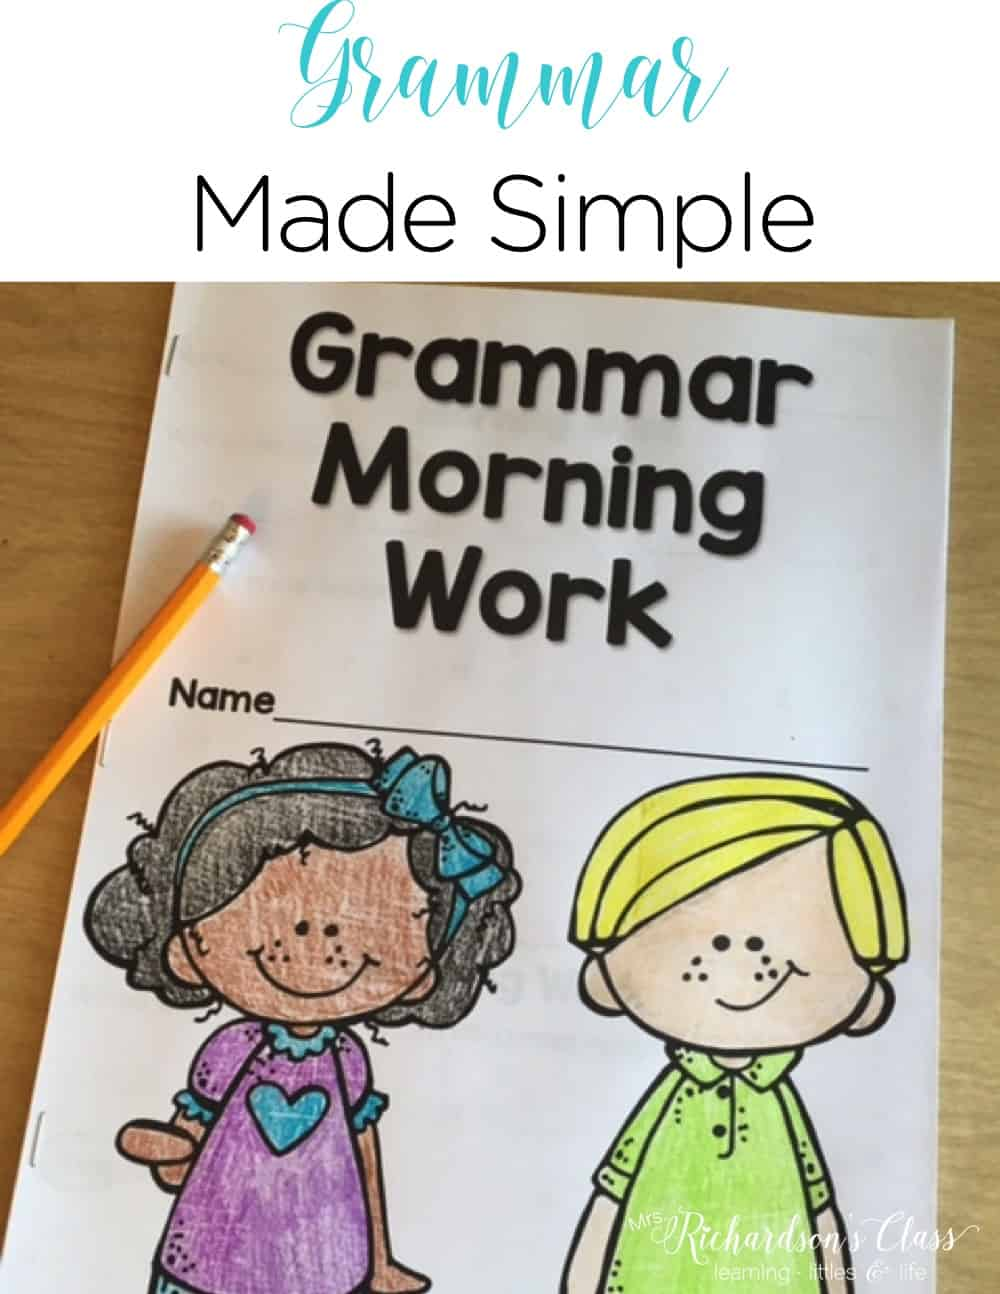 Finding time for grammar lessons for little learners is tough! See how this teacher squeezes in grammar during morning work with her students! #kindergarten #firstgrade #secondgrade #morningwork